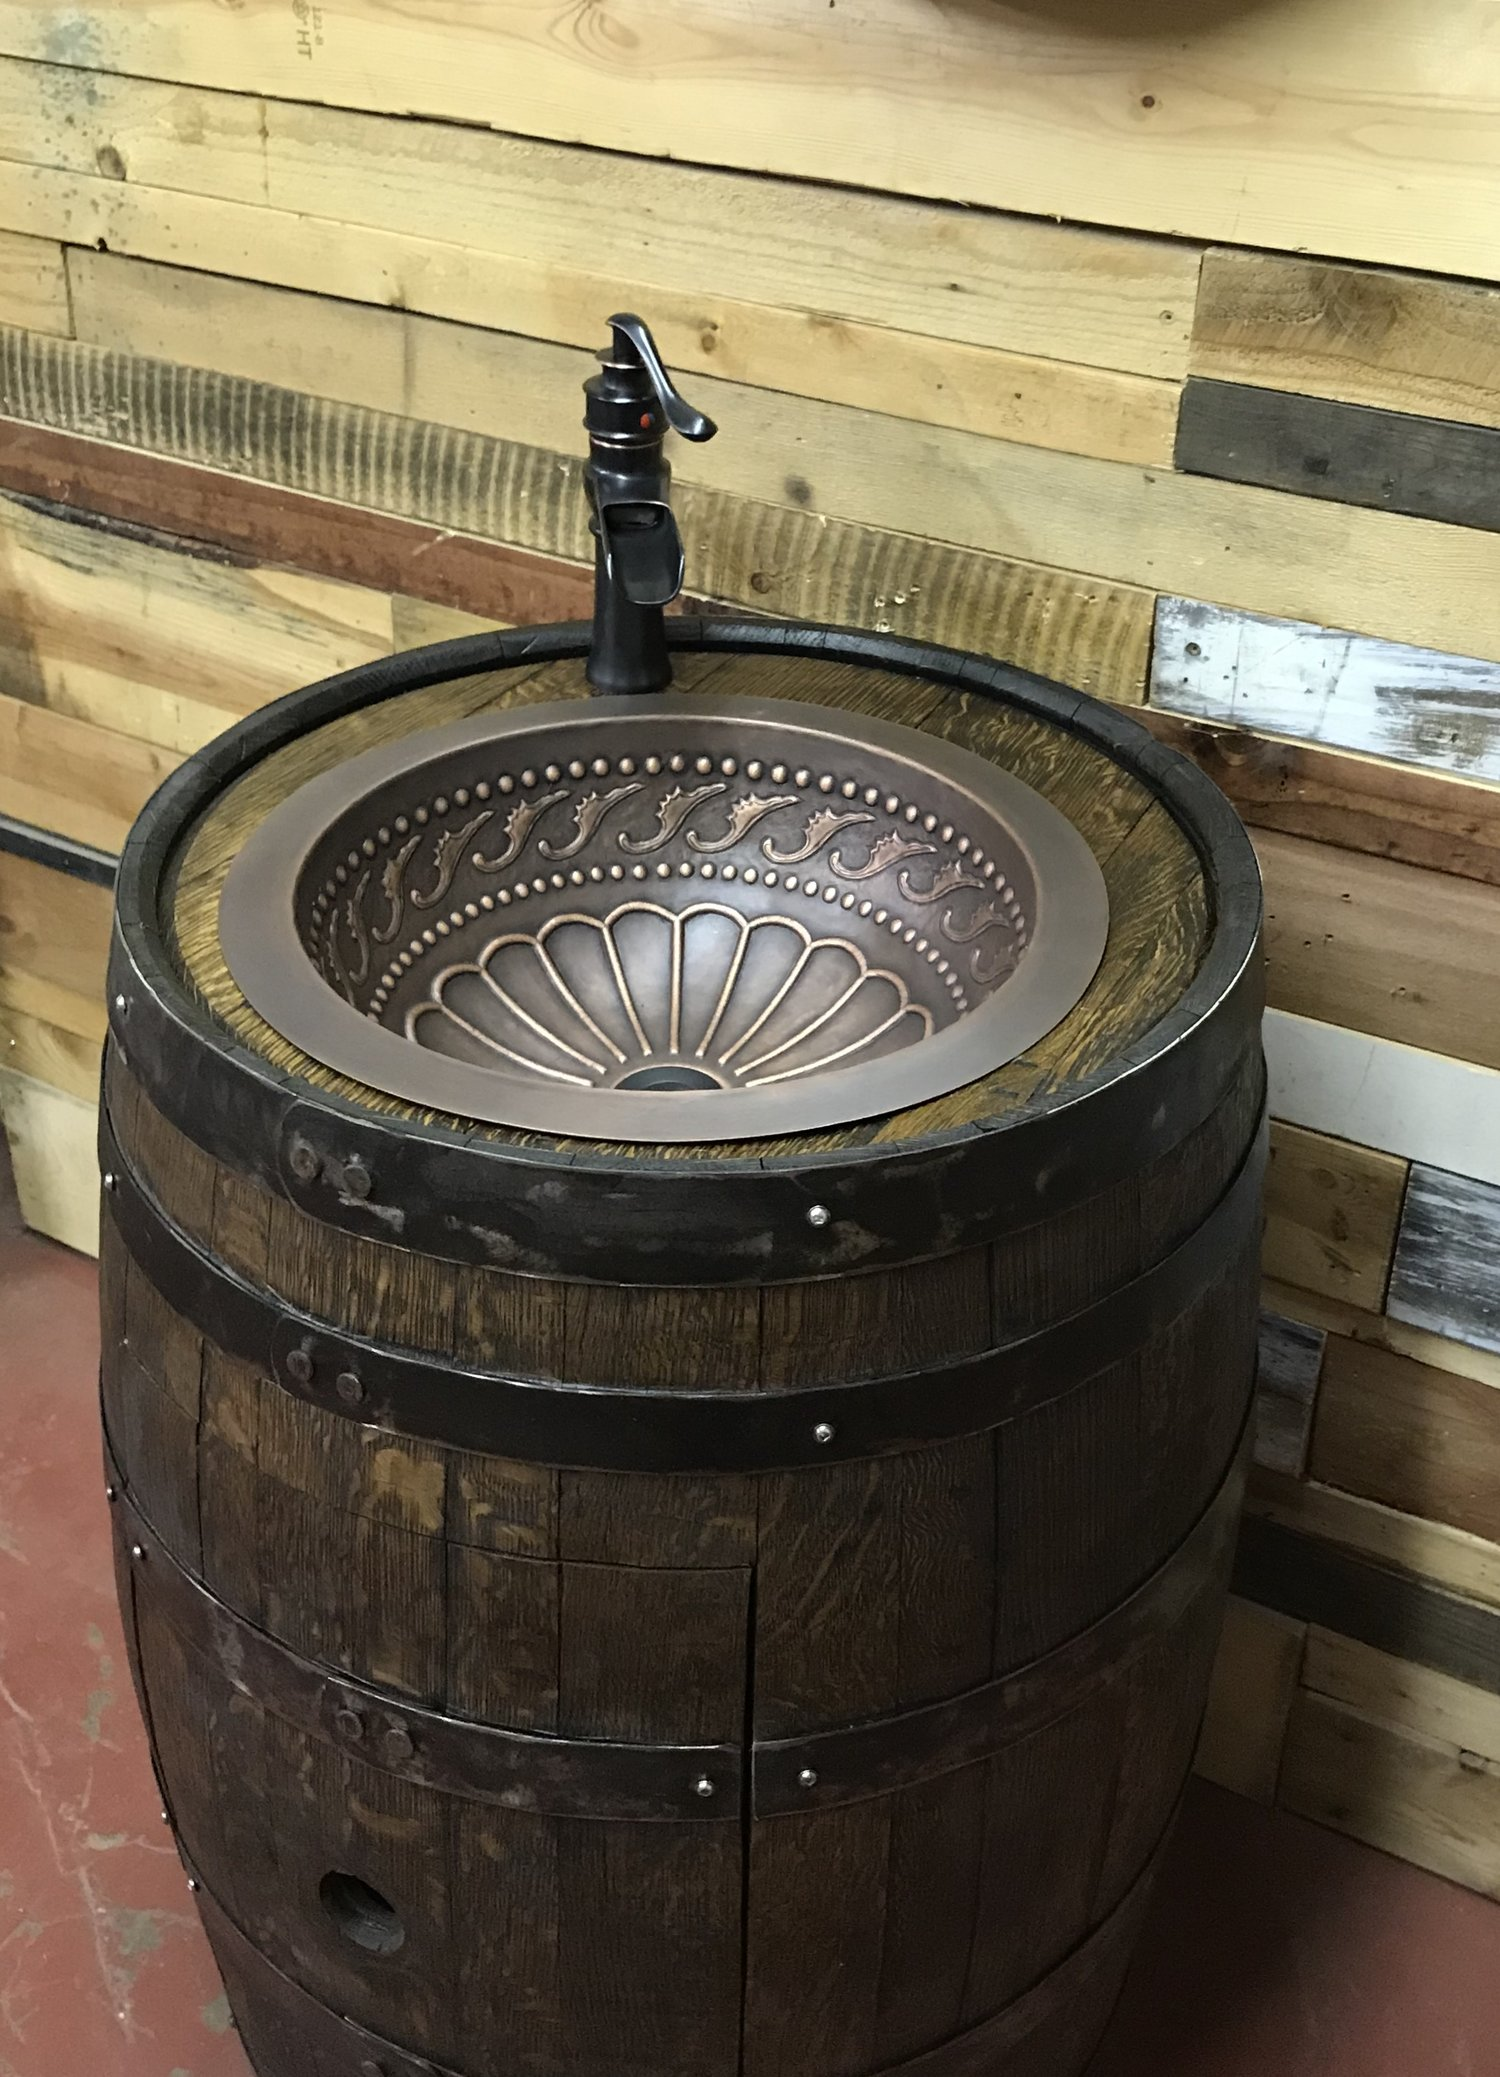 Whiskey Barrel Copper Sink Vanity with Antique Waterfall Faucet ...